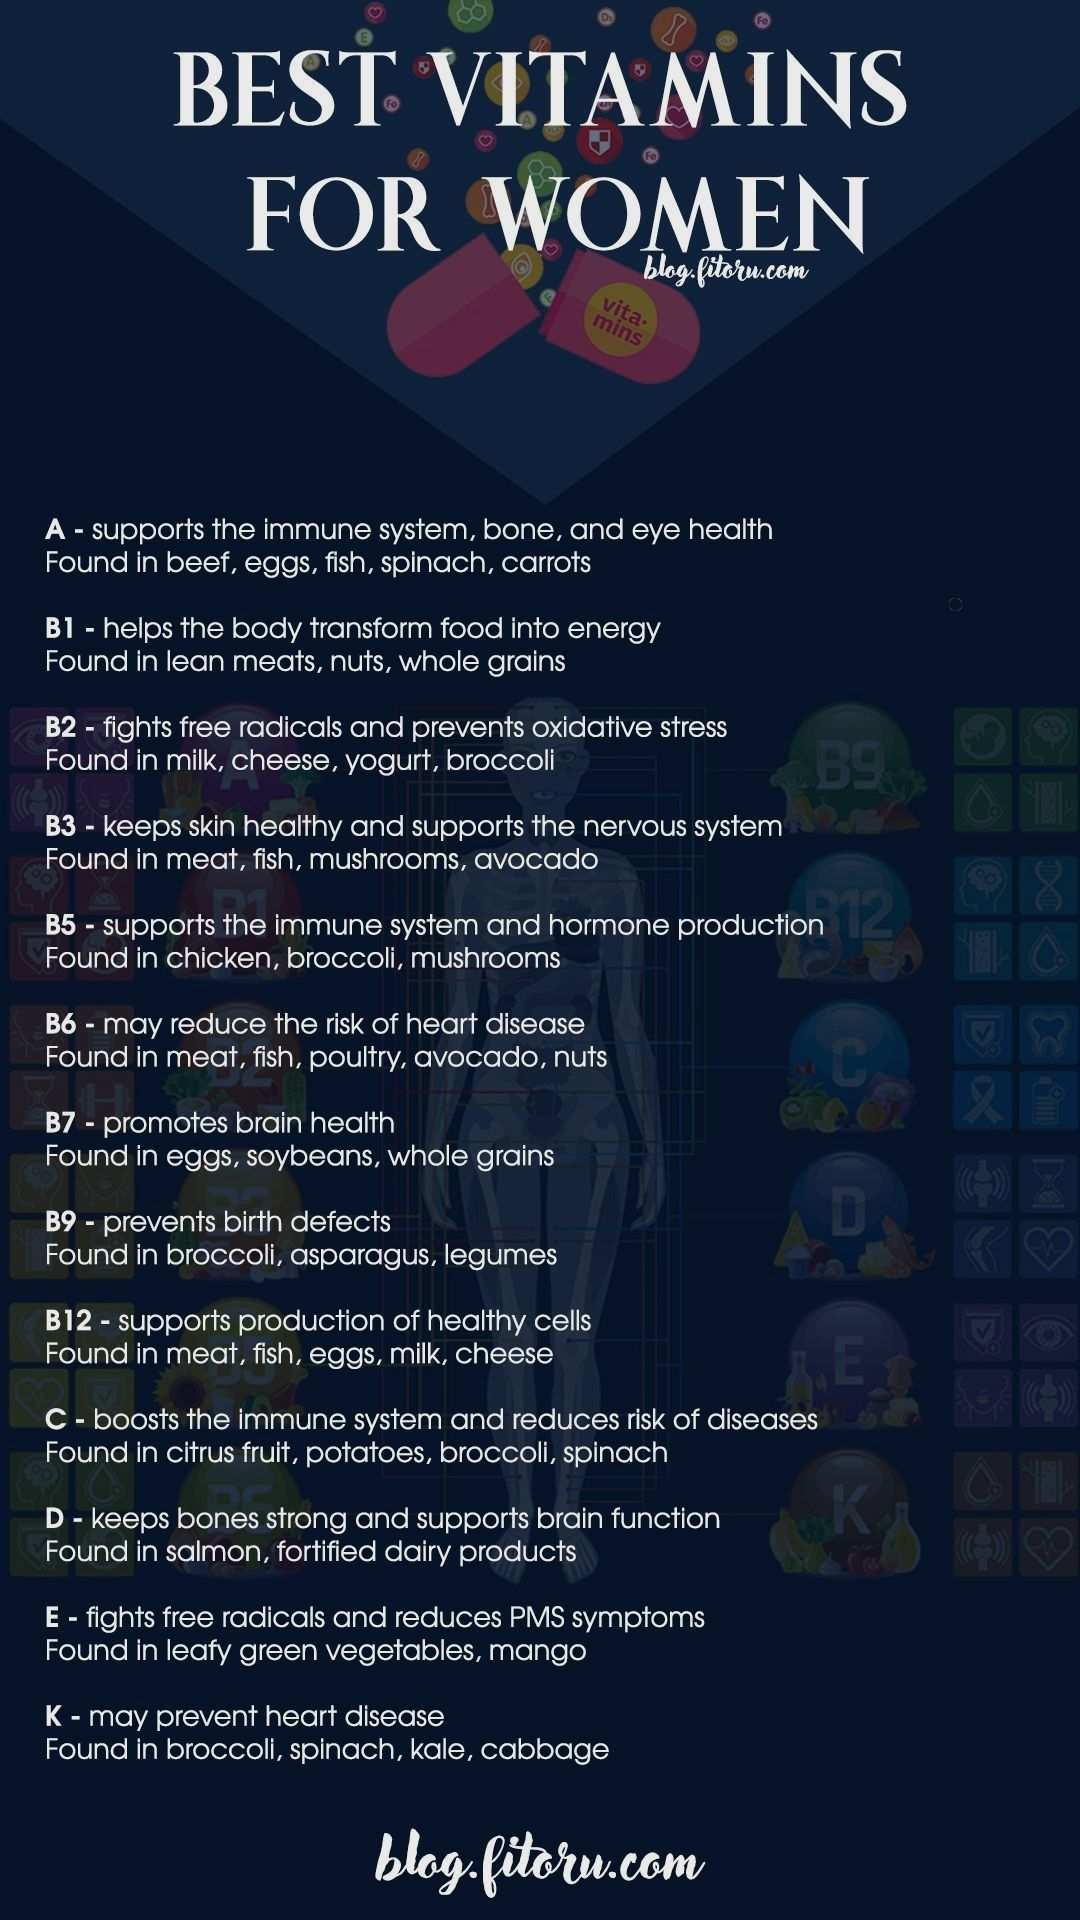 Pin by phil7ddsbi on Health for women in 2020 Health